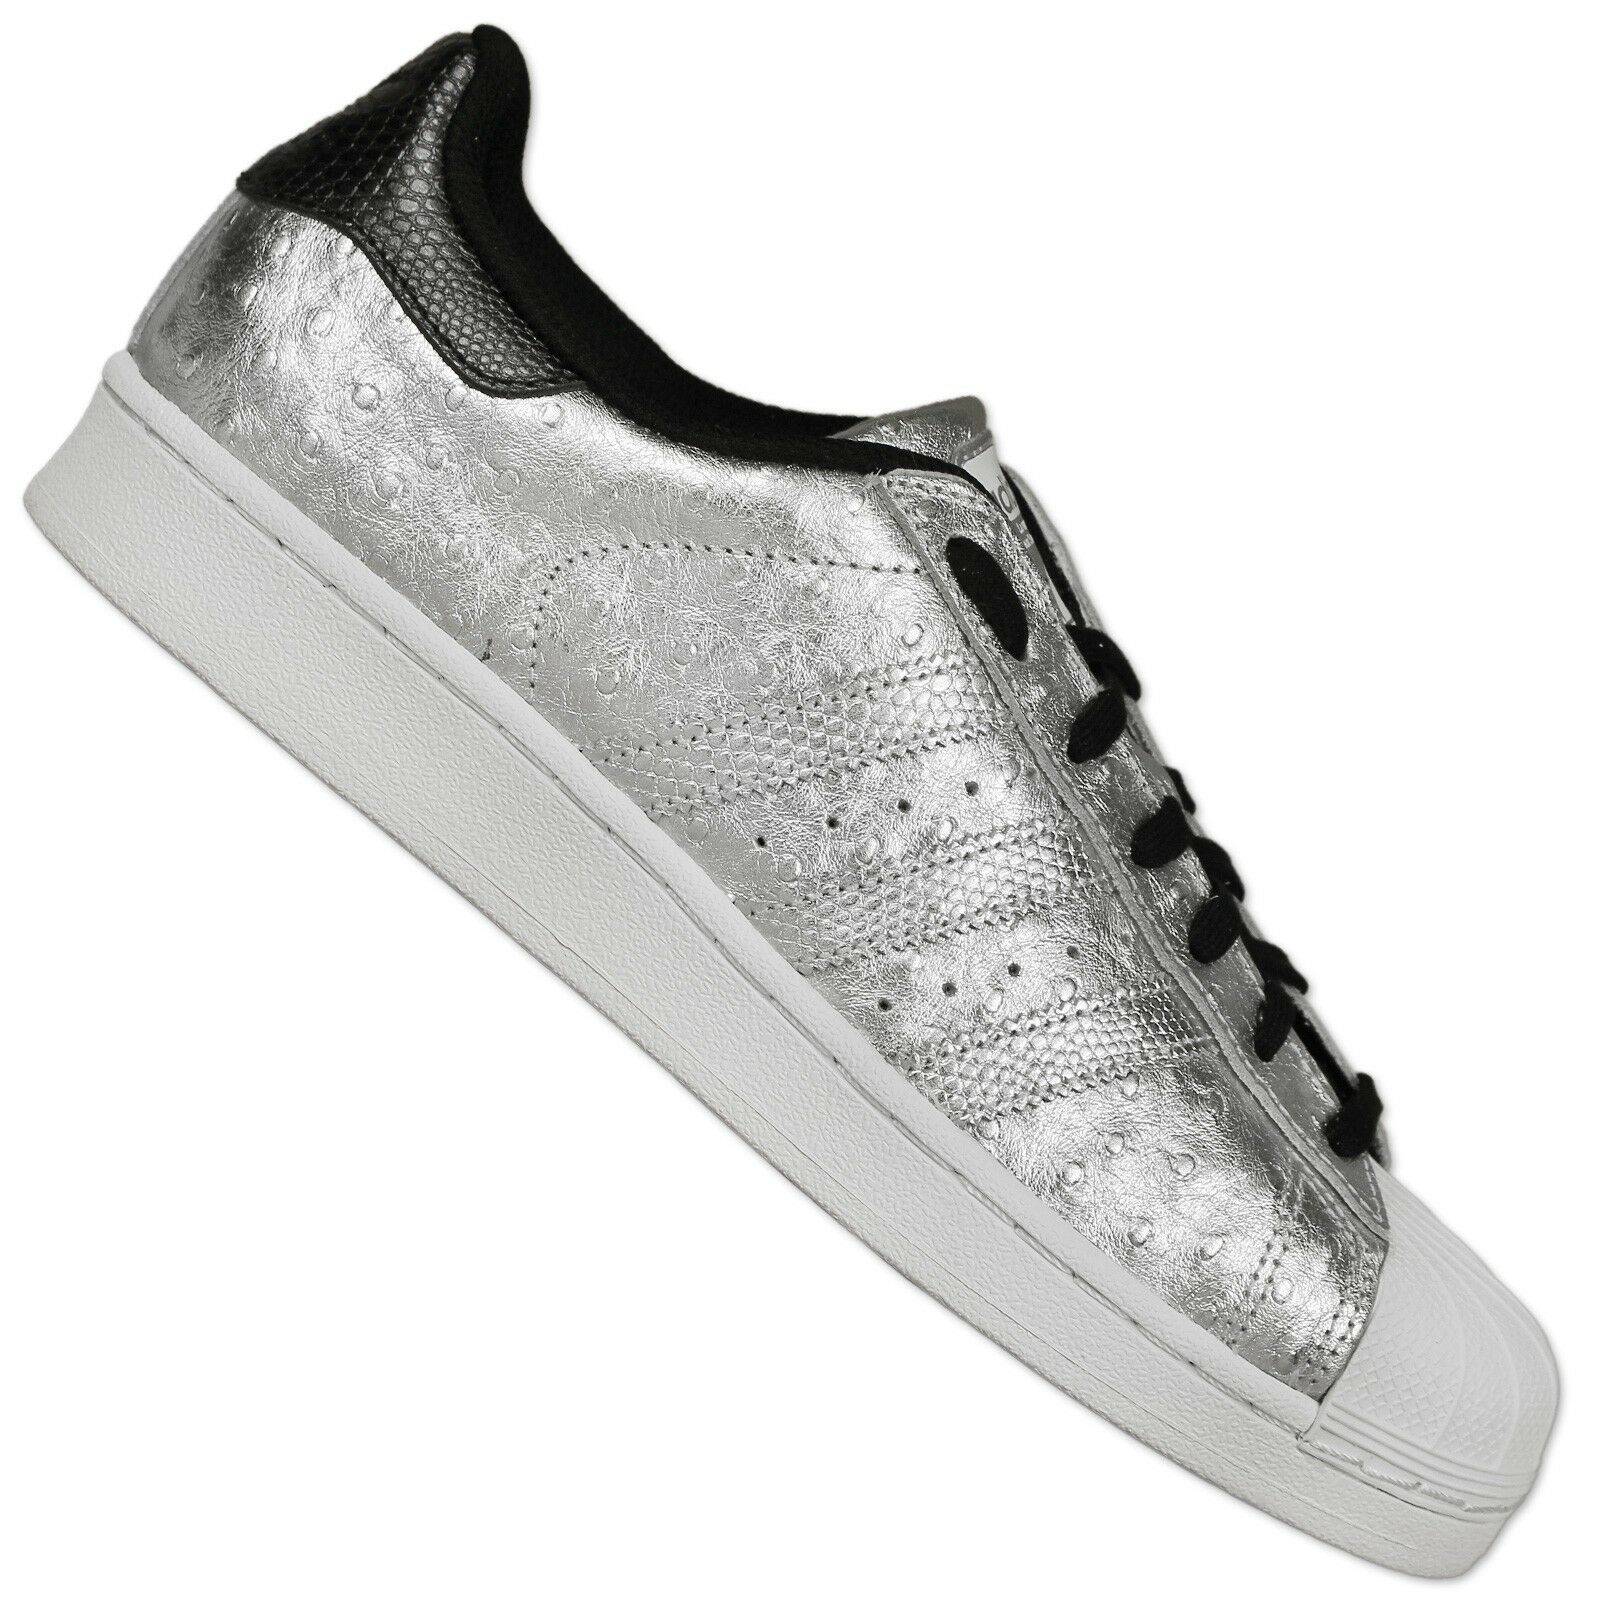 Adidas Originals Superstar shoes da Ginnastica Party Strauss silver Metallo 42